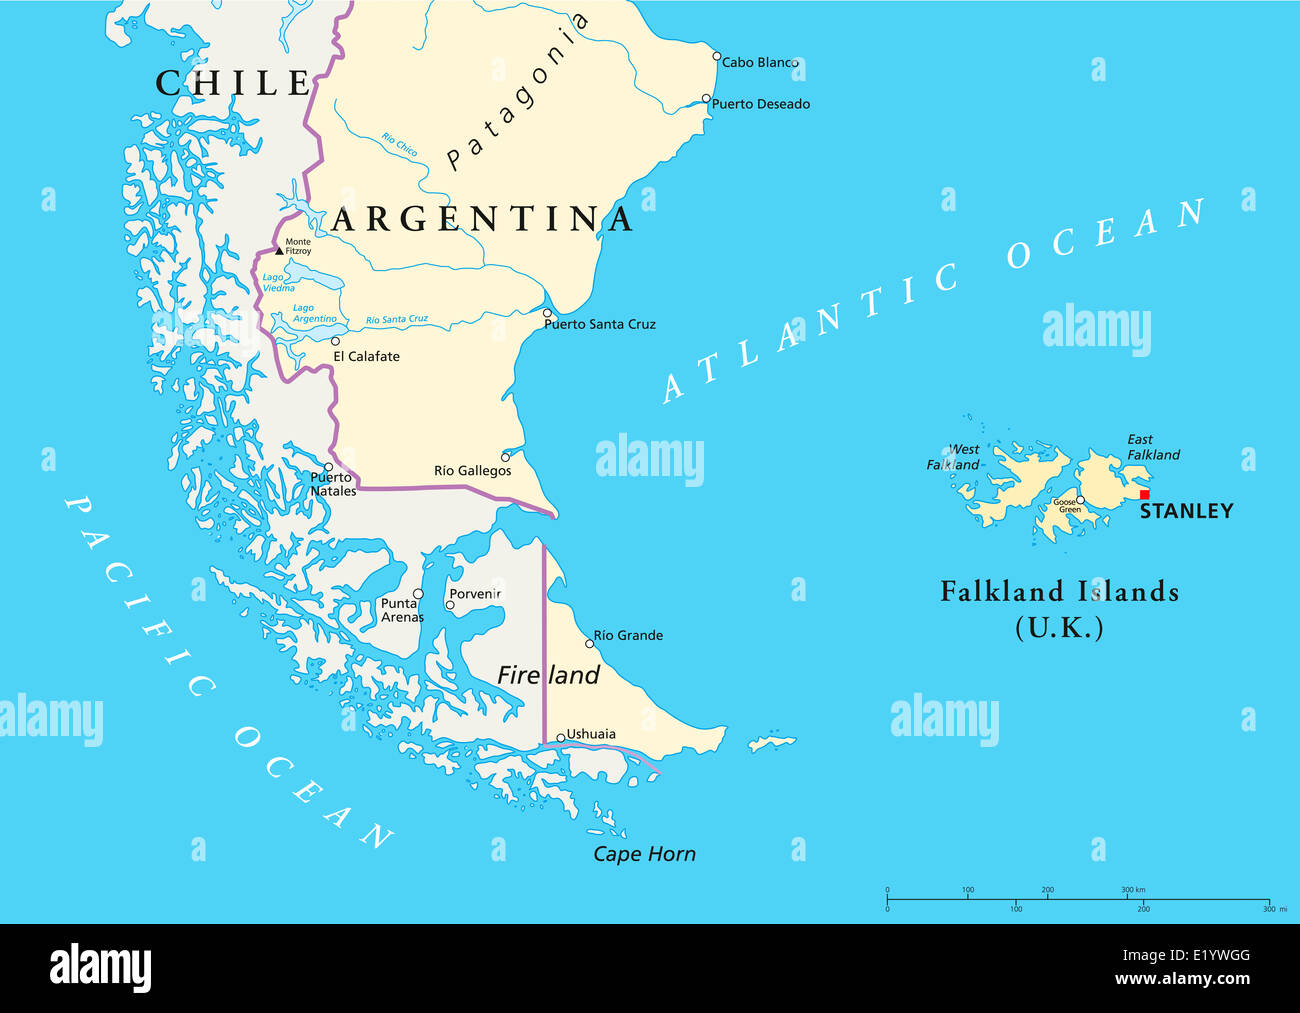 Falkland Islands Political Map And Part Of South America With - Falkland islands map